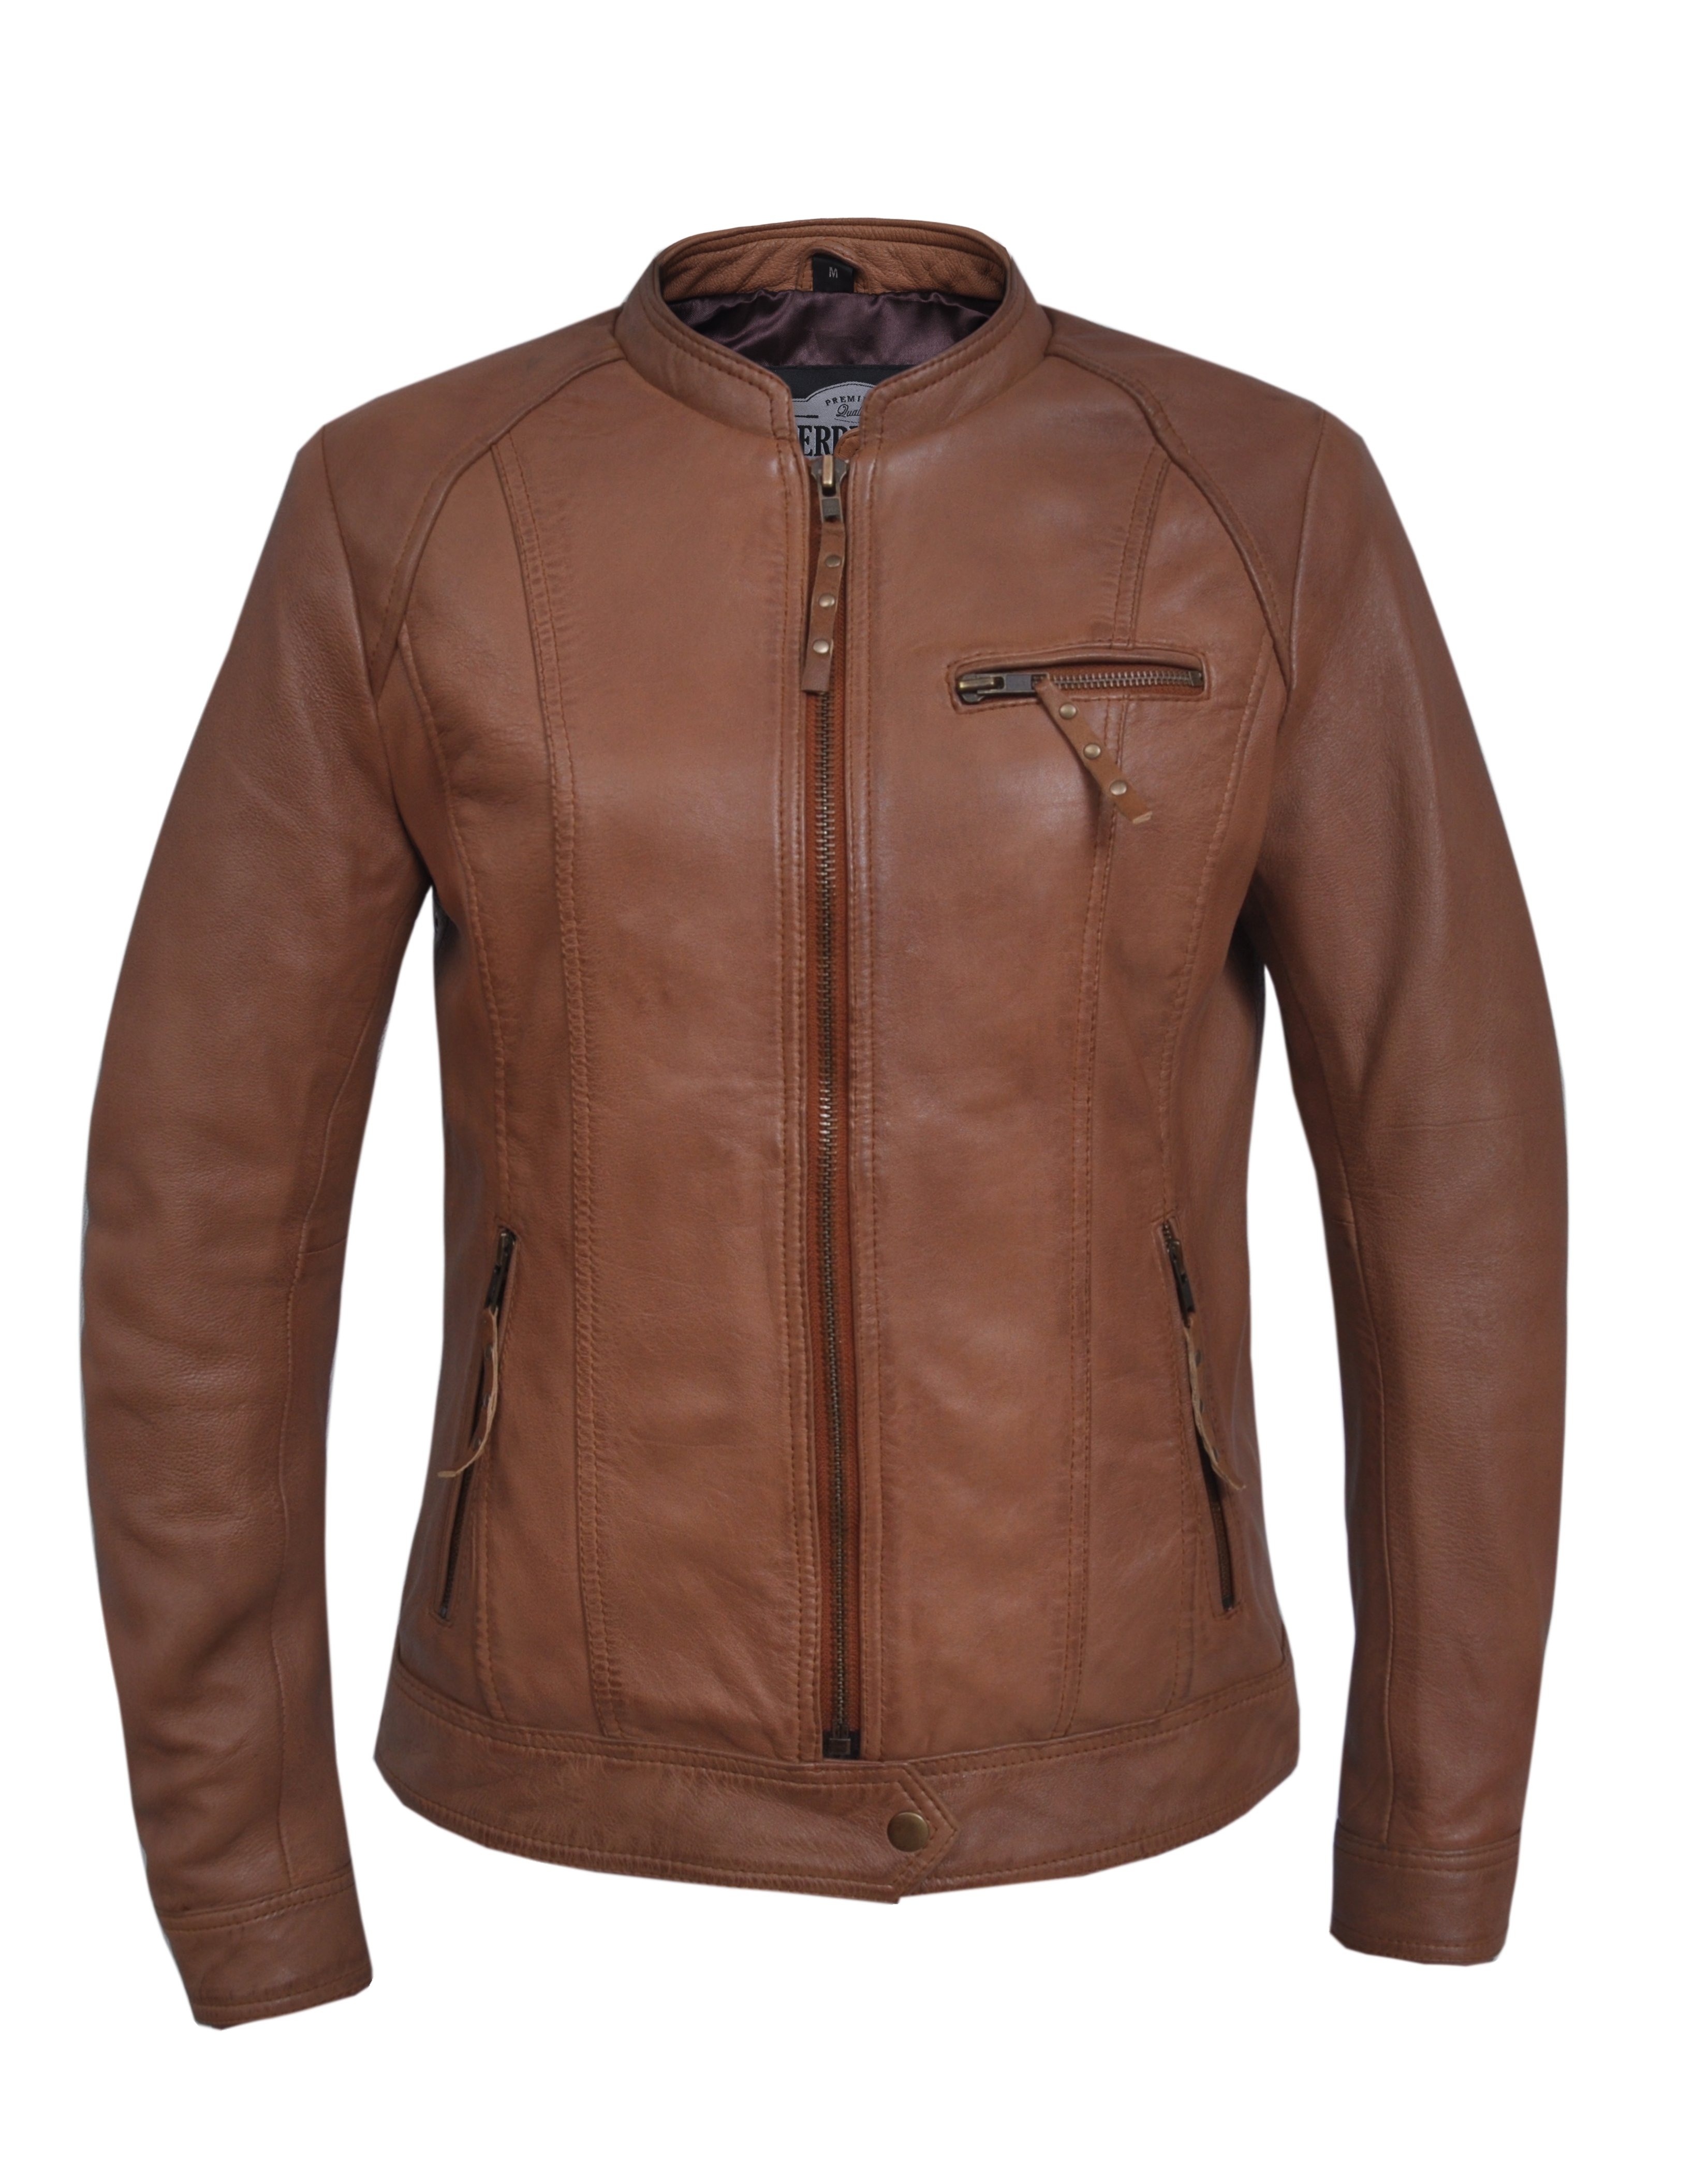 UNIK Ladies Tan Leather Jacket - SKU 6849-TAN-UN